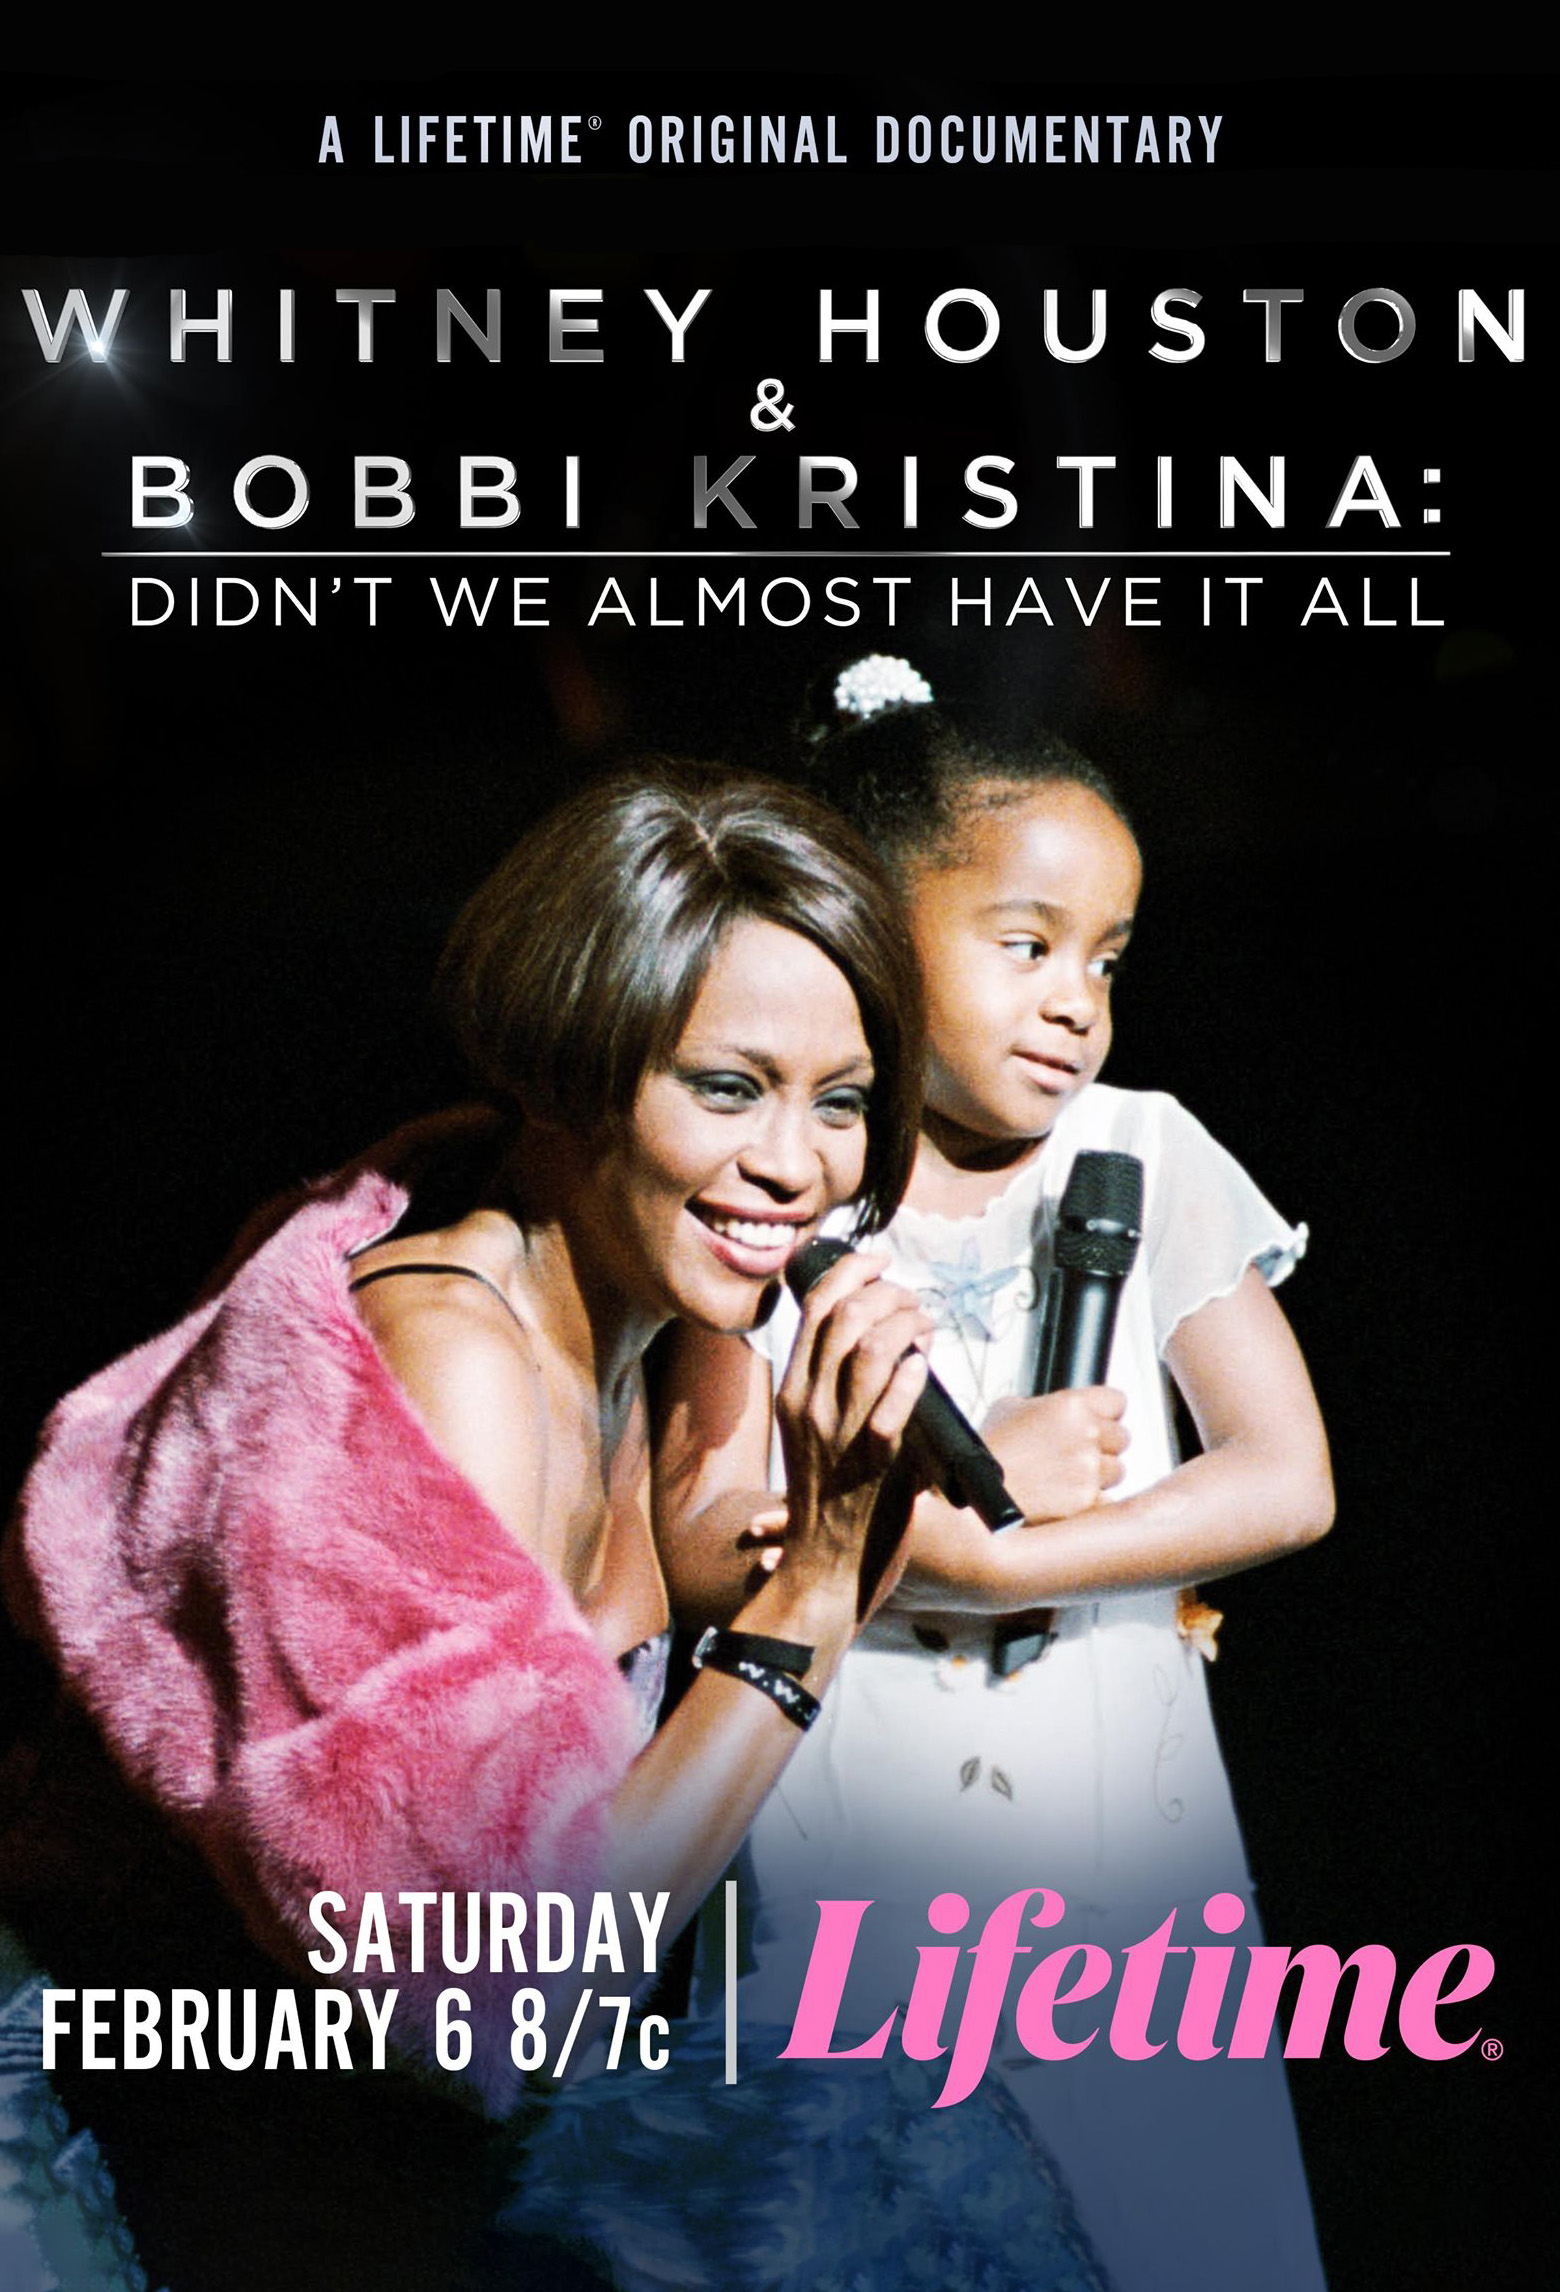 Whitney Houston & Bobbi Kristina: Didn't We Almost Have It All hd on soap2day